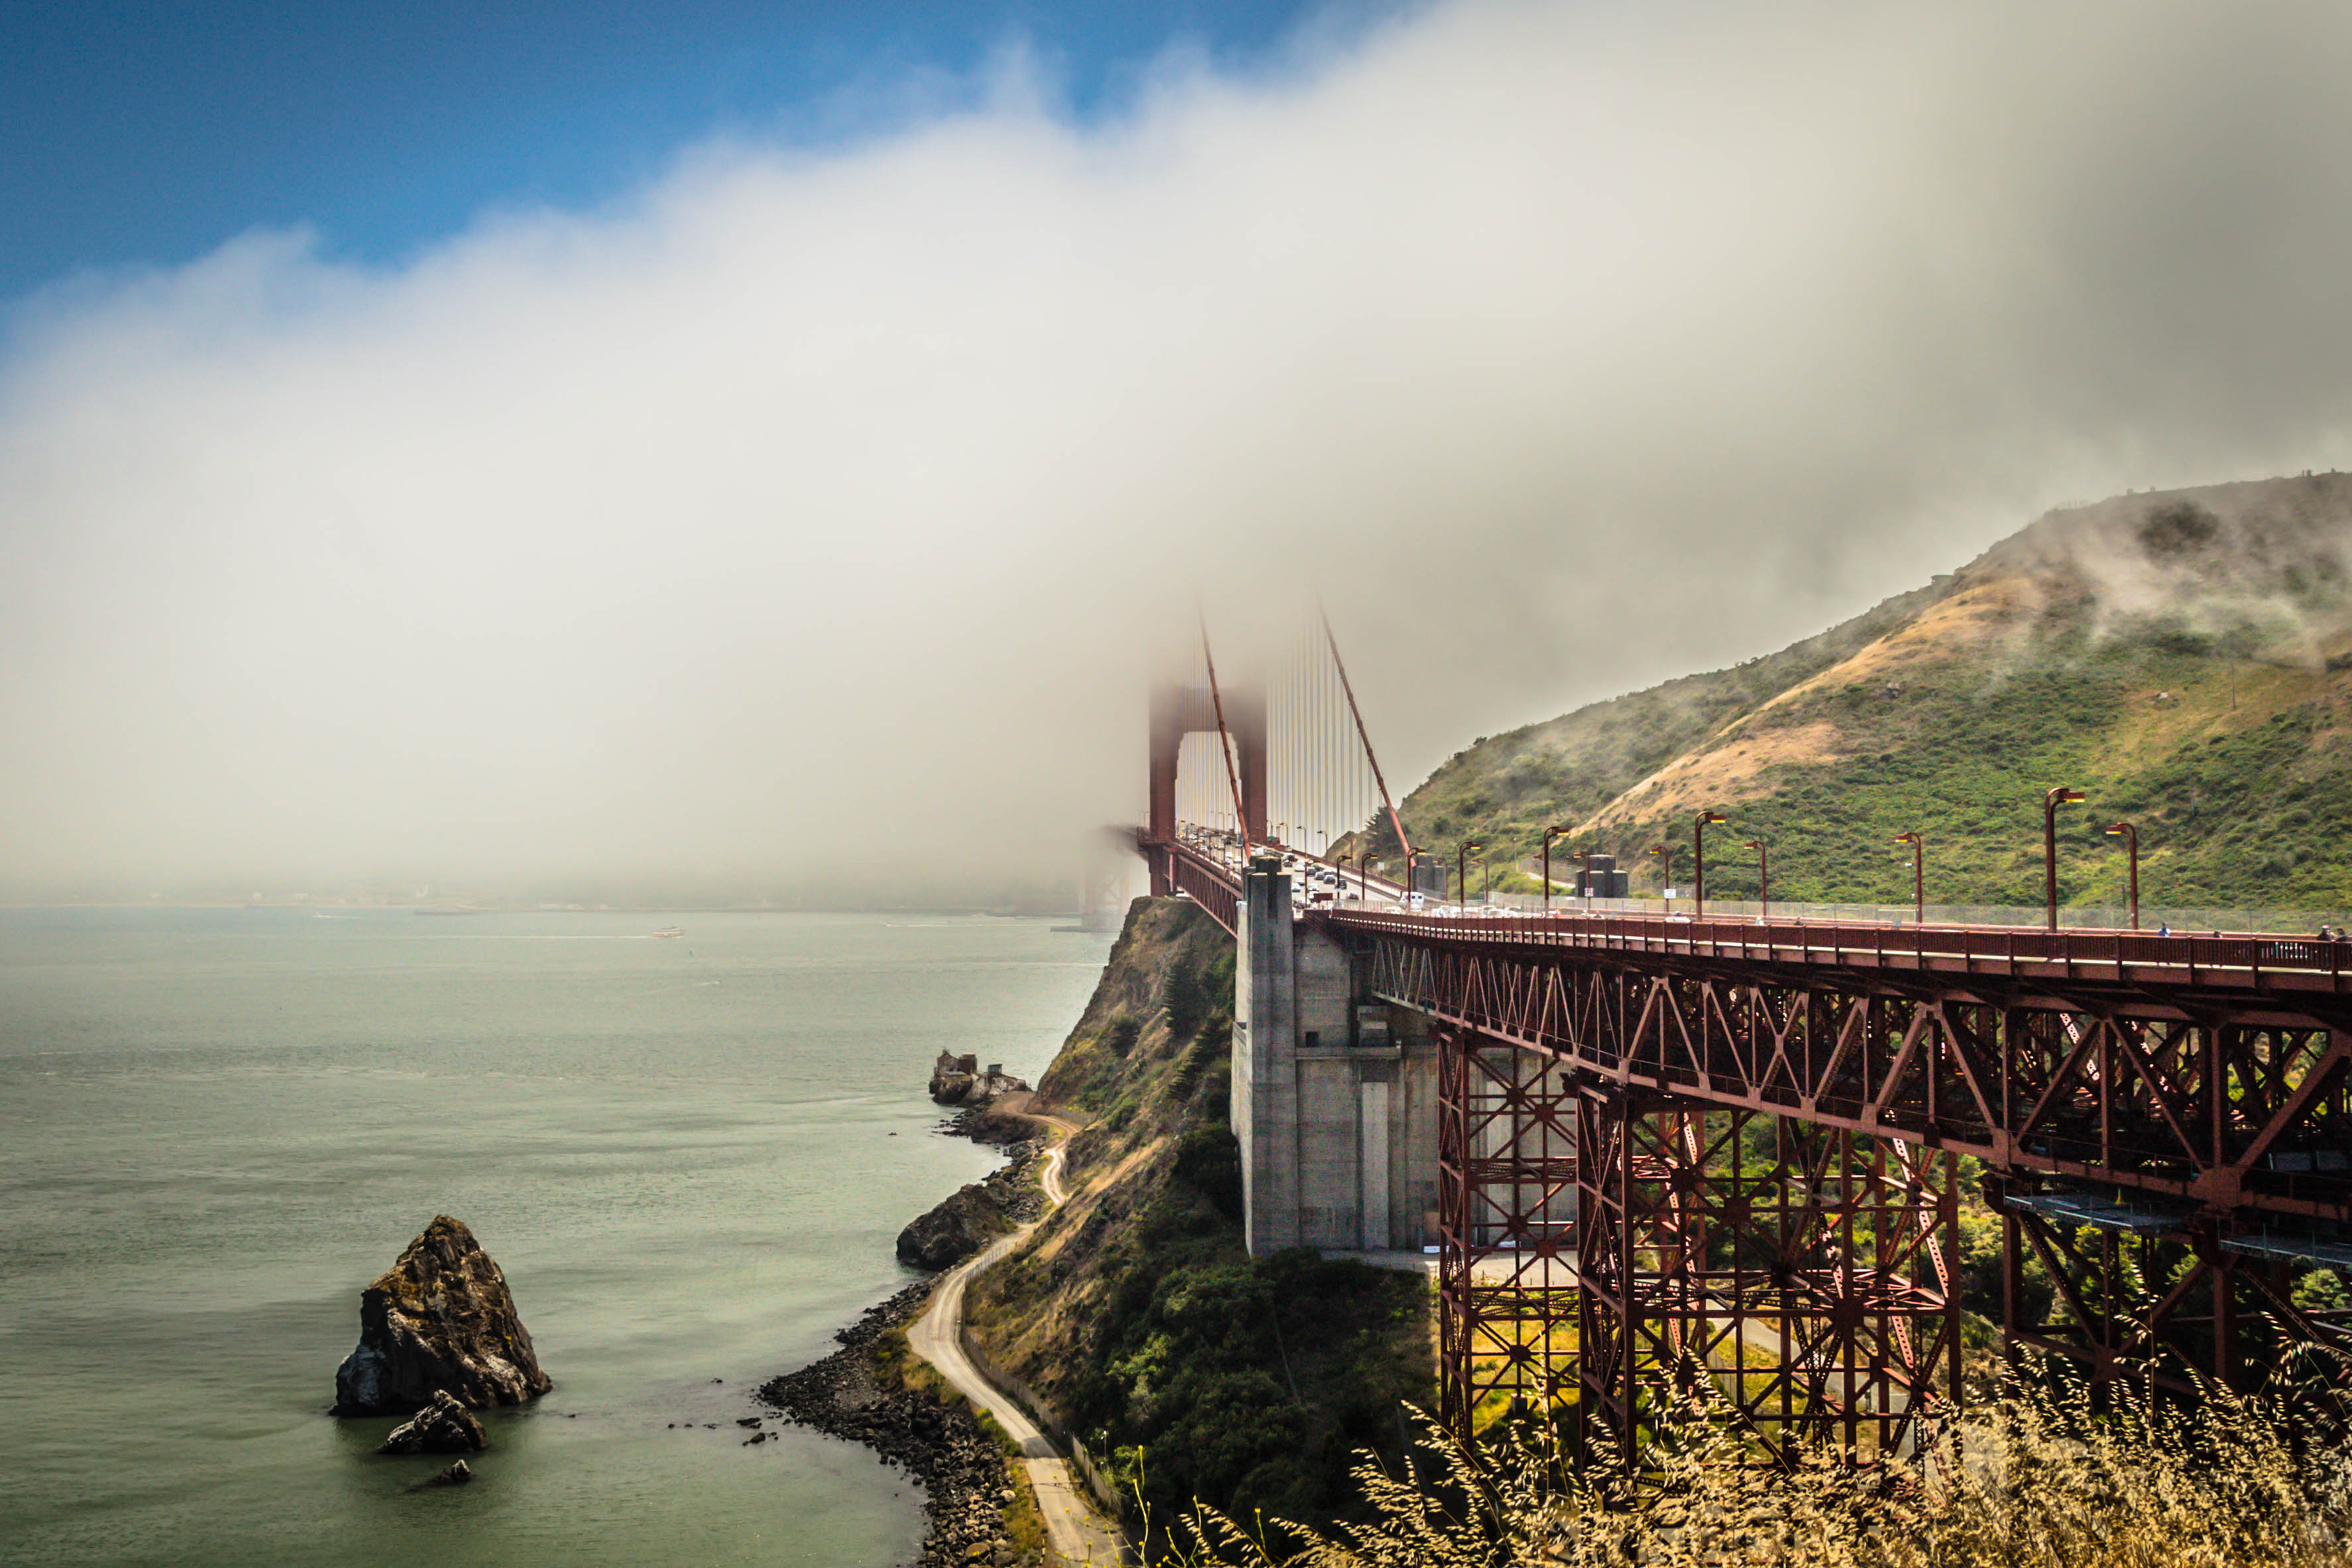 Golden Gate Bridge in sea fog